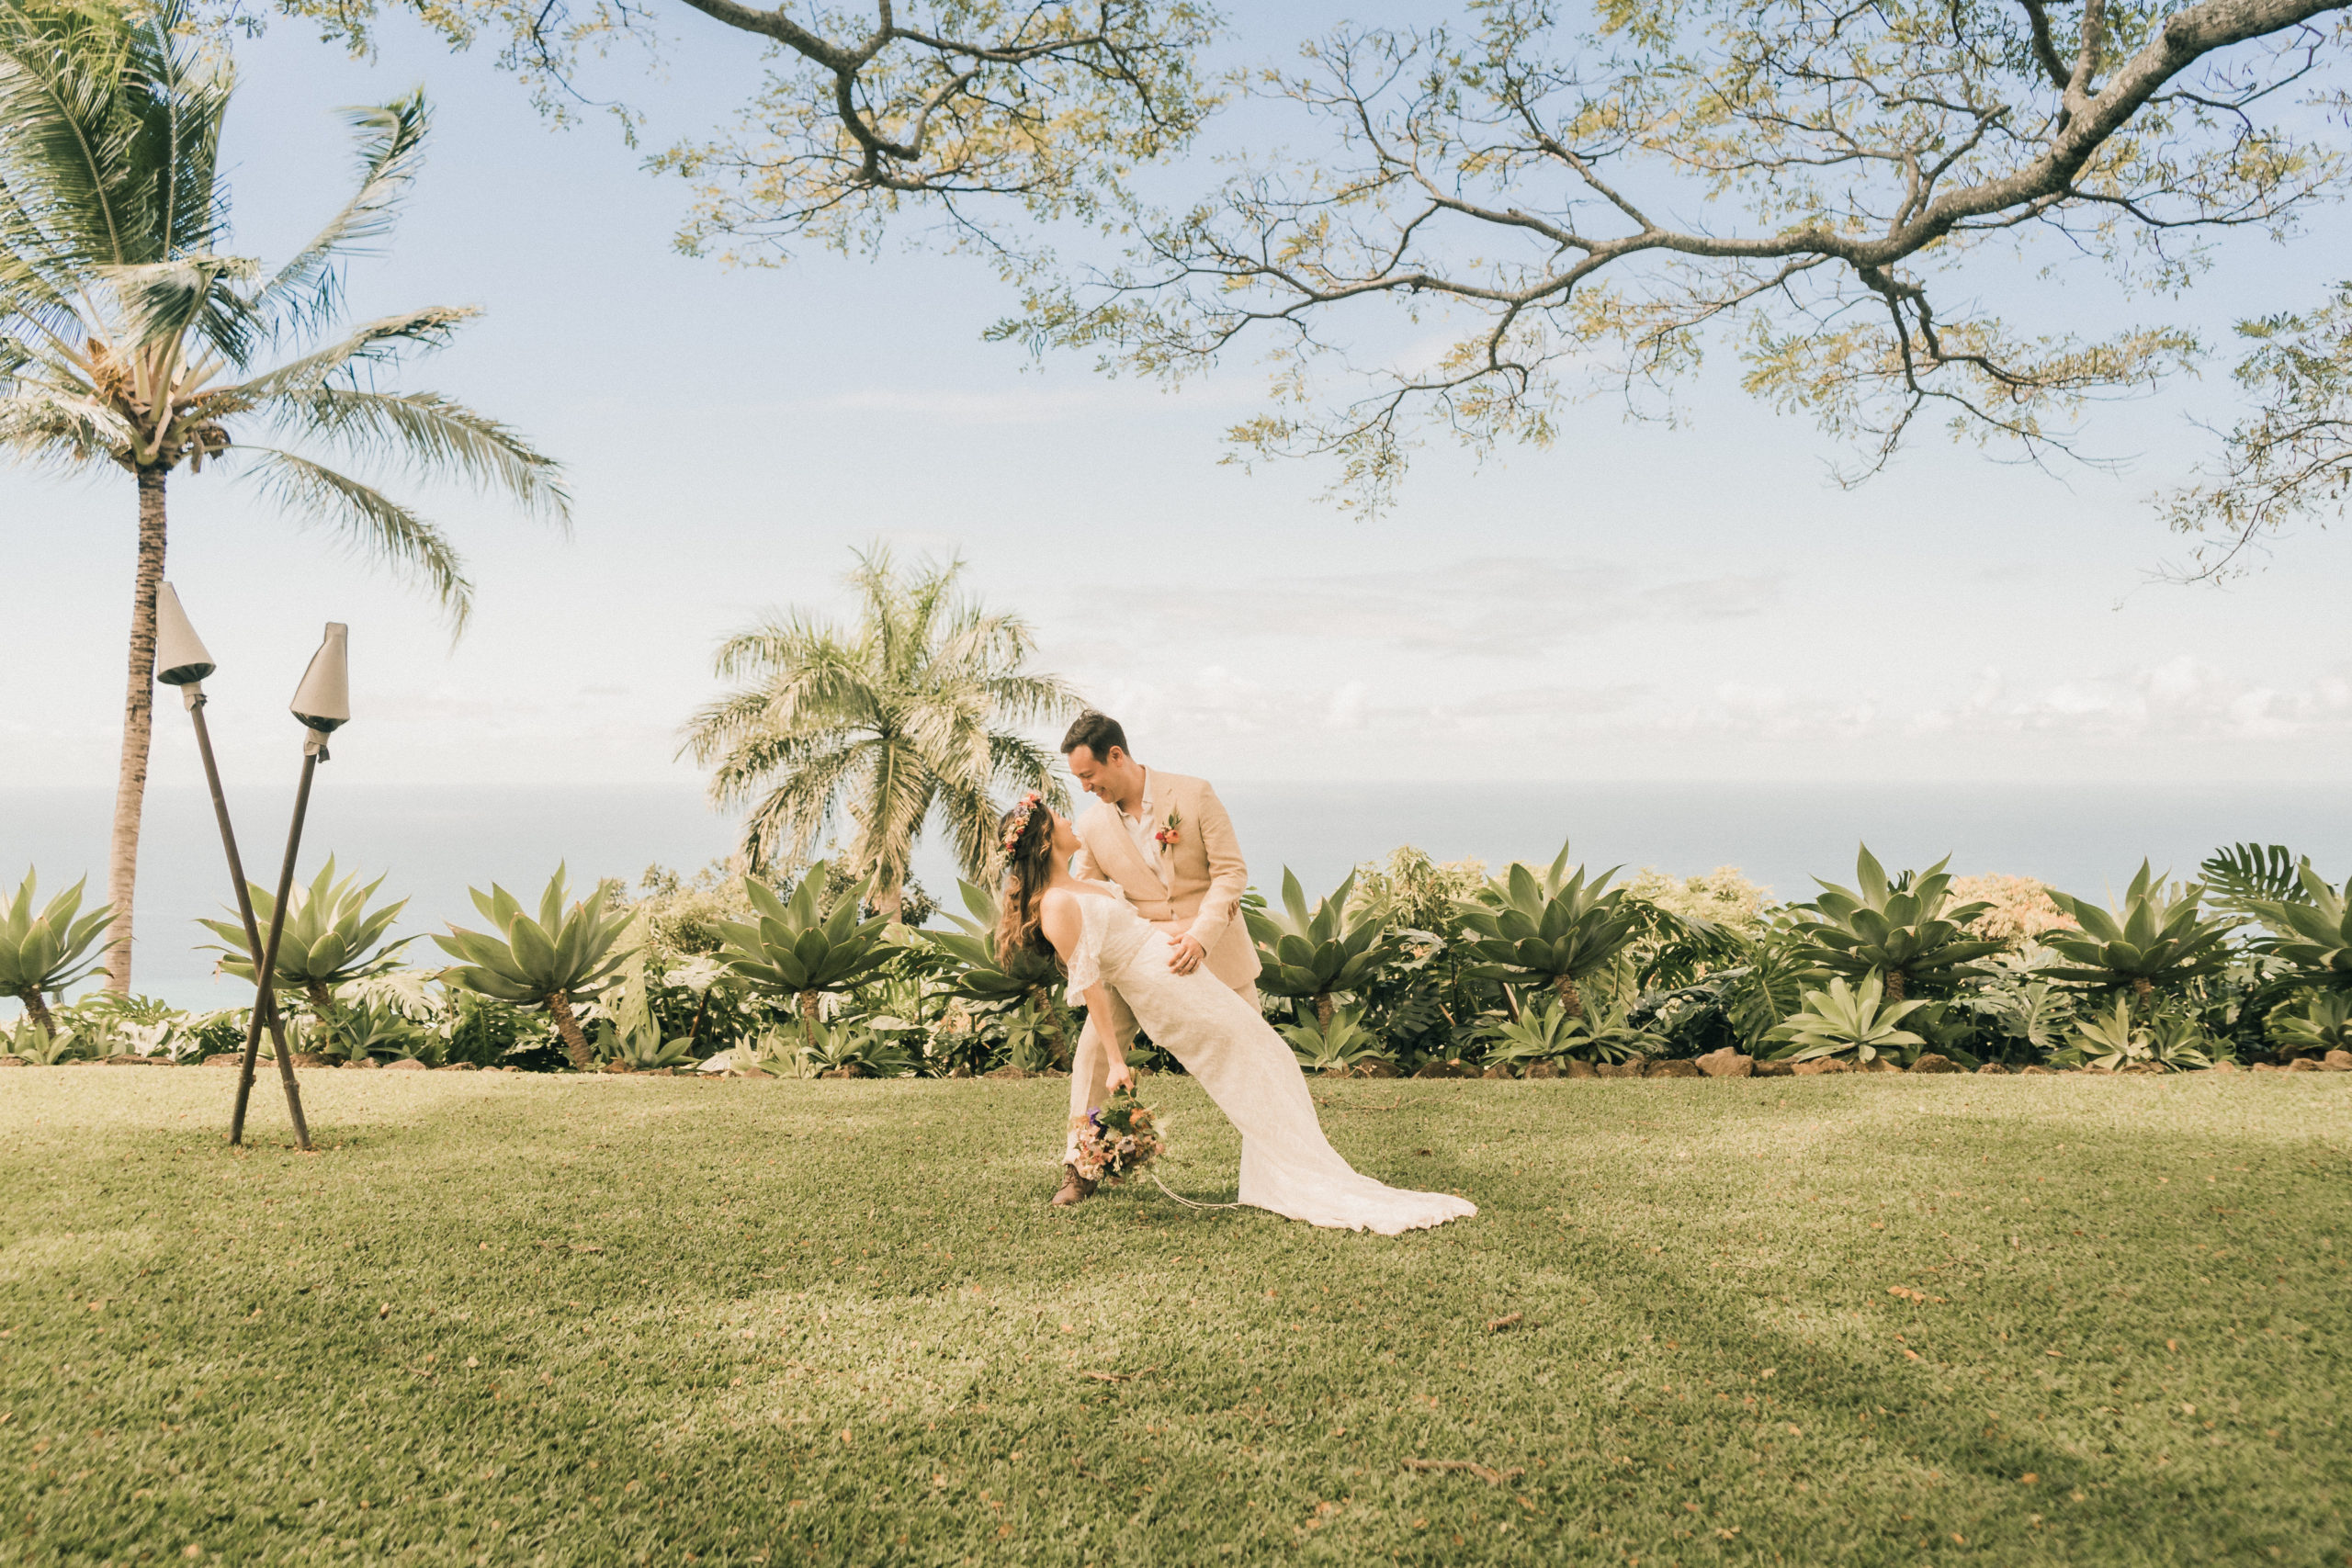 Elopement ceremony in Hawaii overlooking the ocean